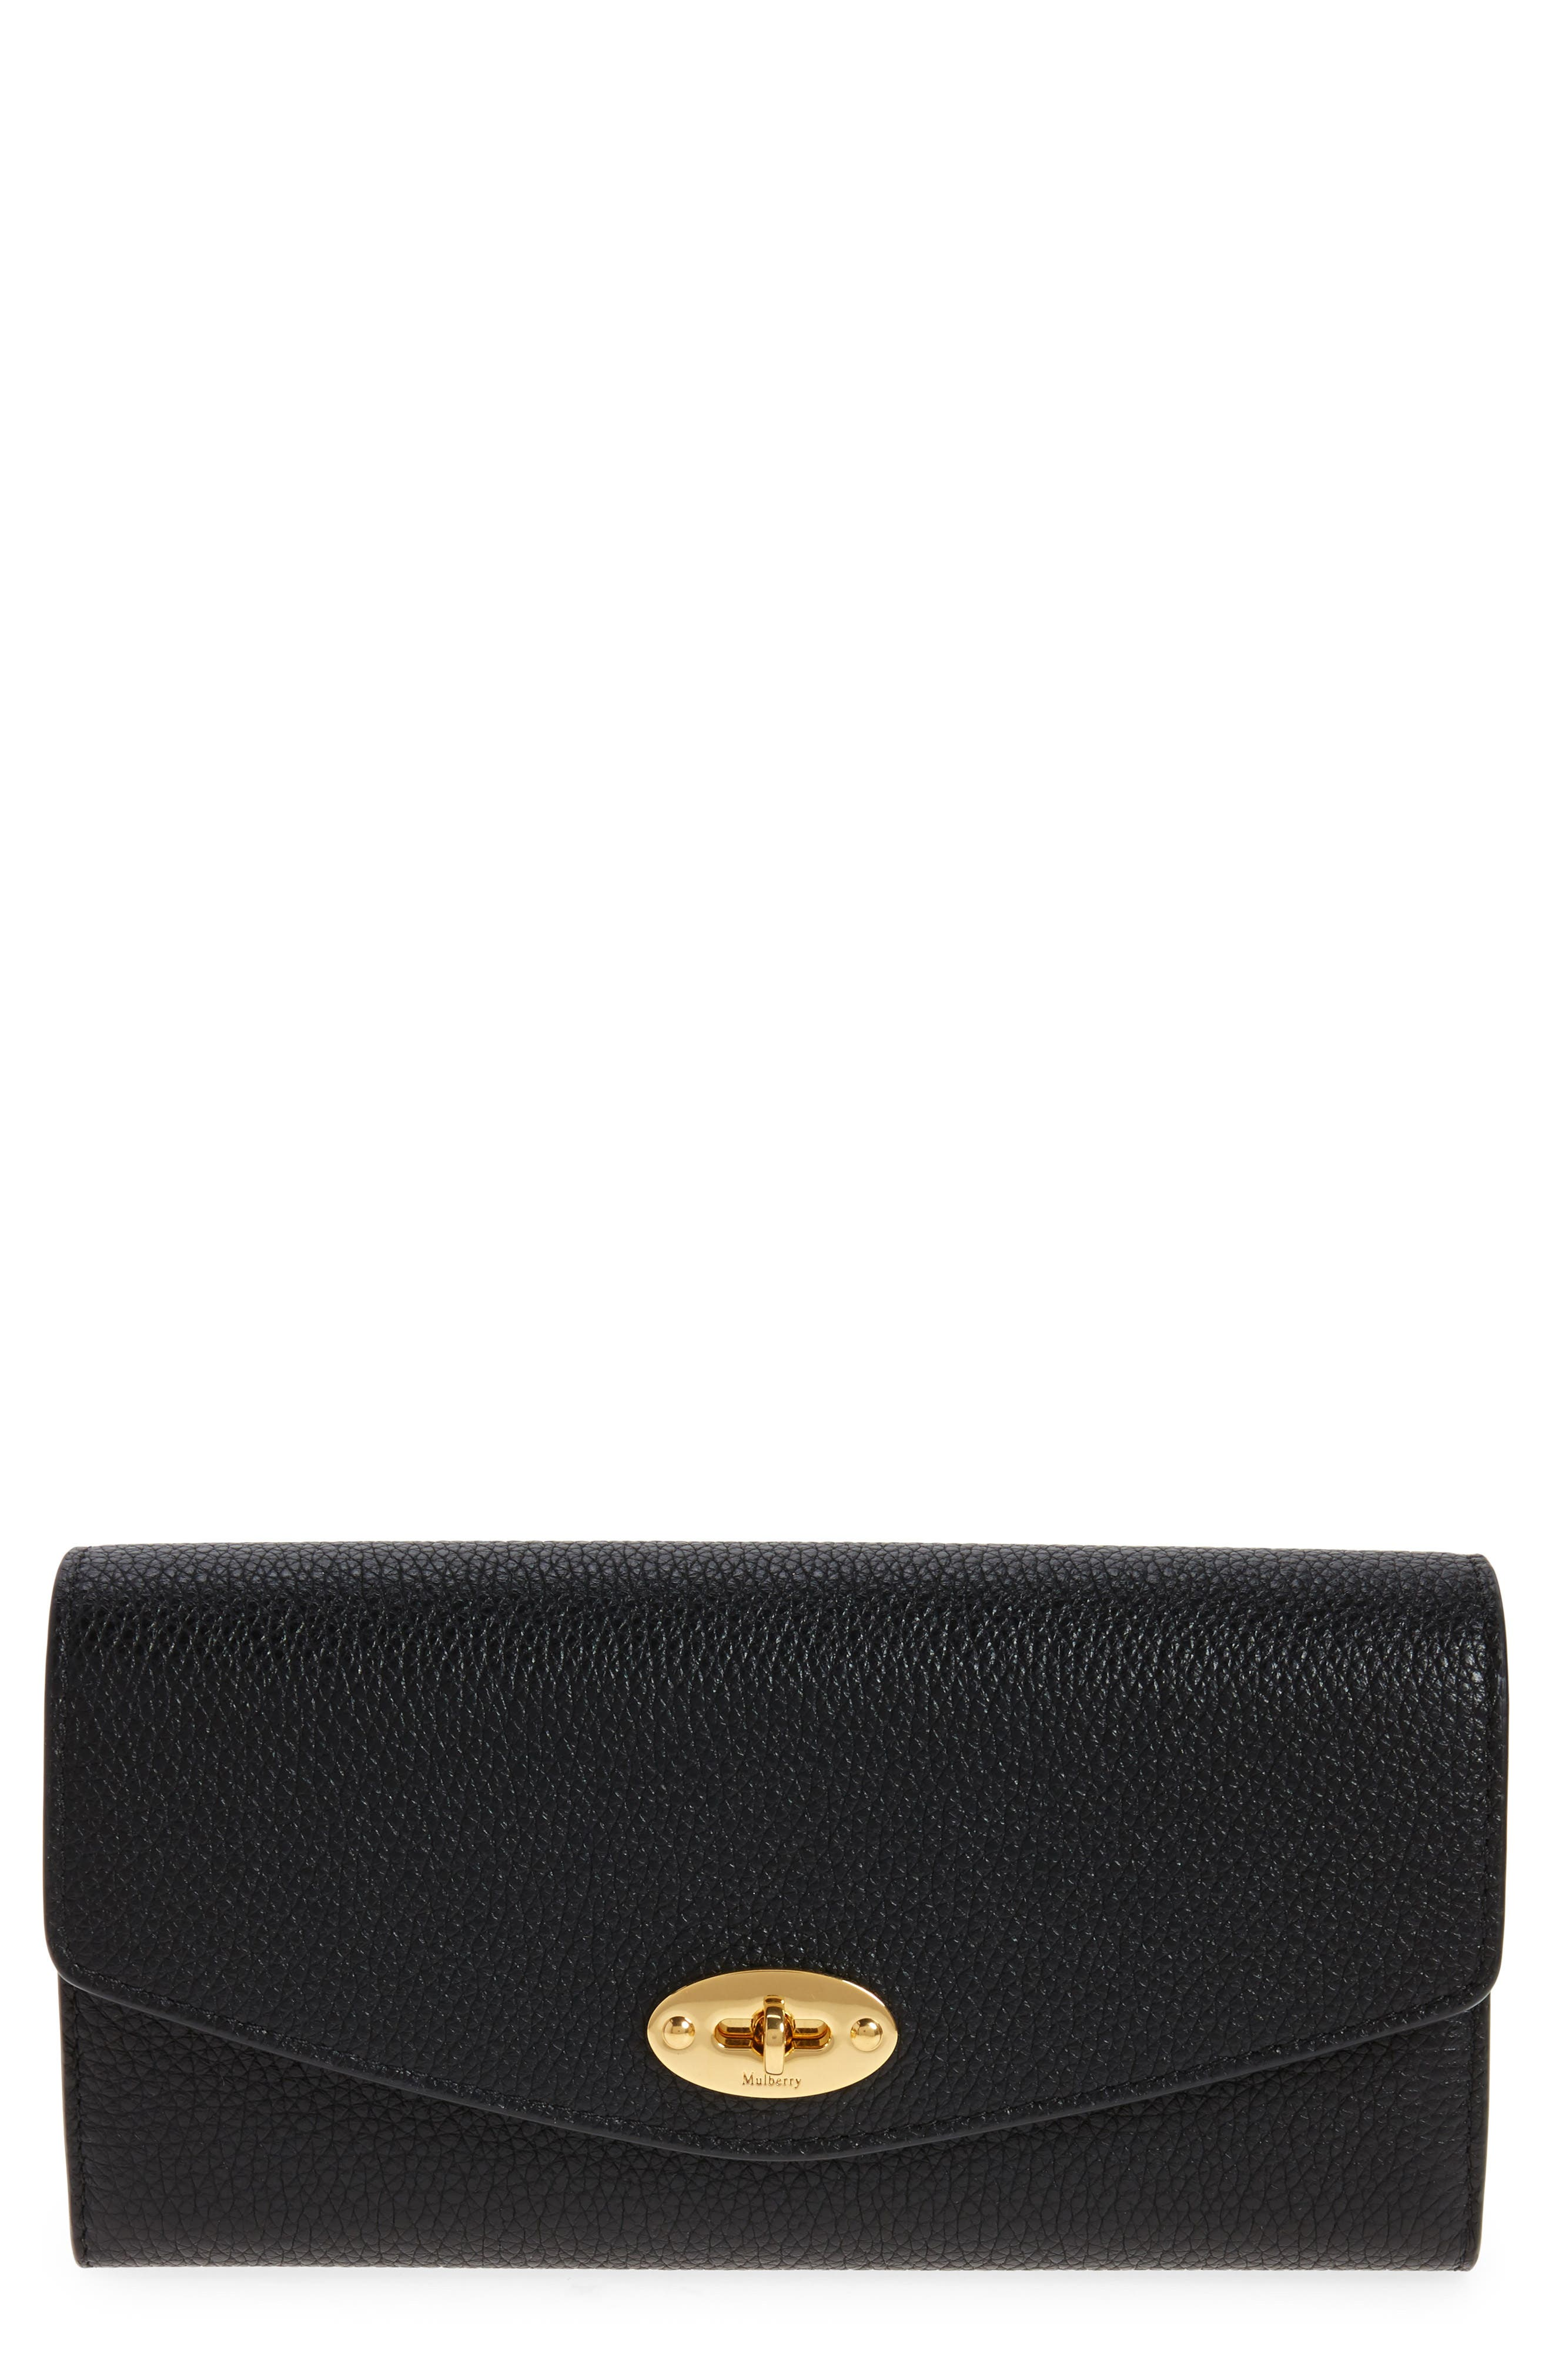 Darley Continental Leather Wallet,                             Main thumbnail 1, color,                             Black